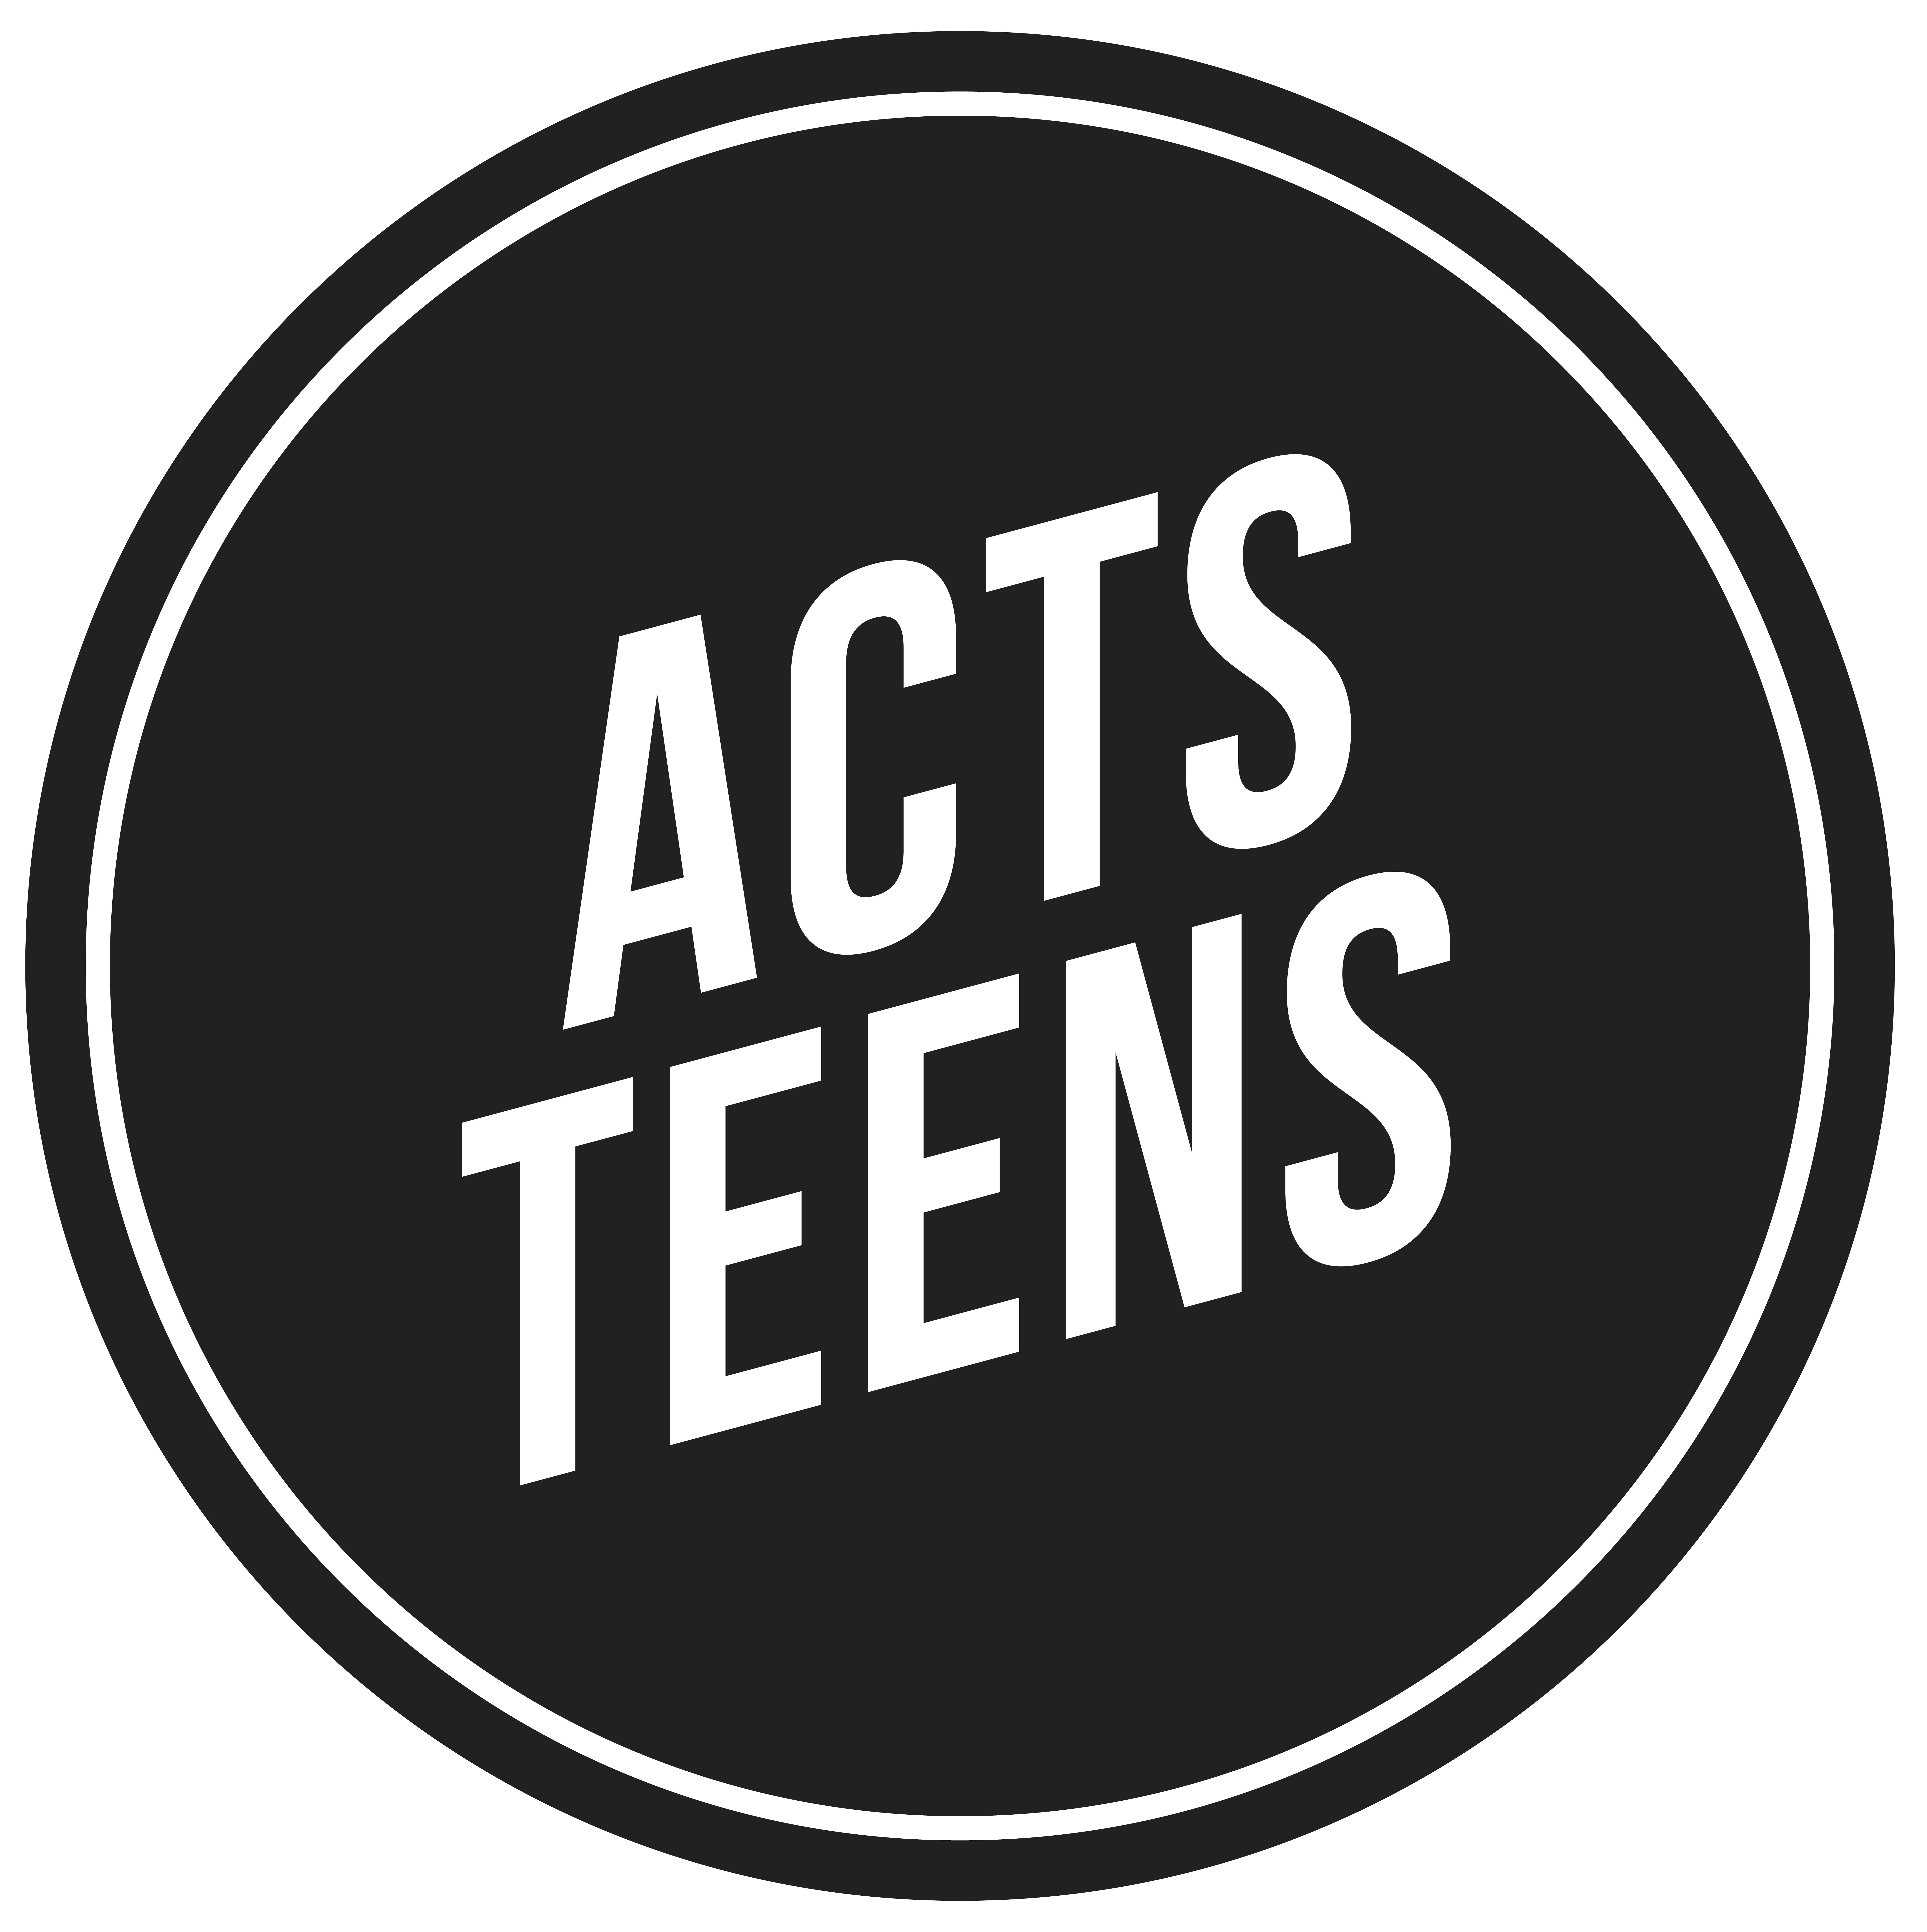 Acts Teens